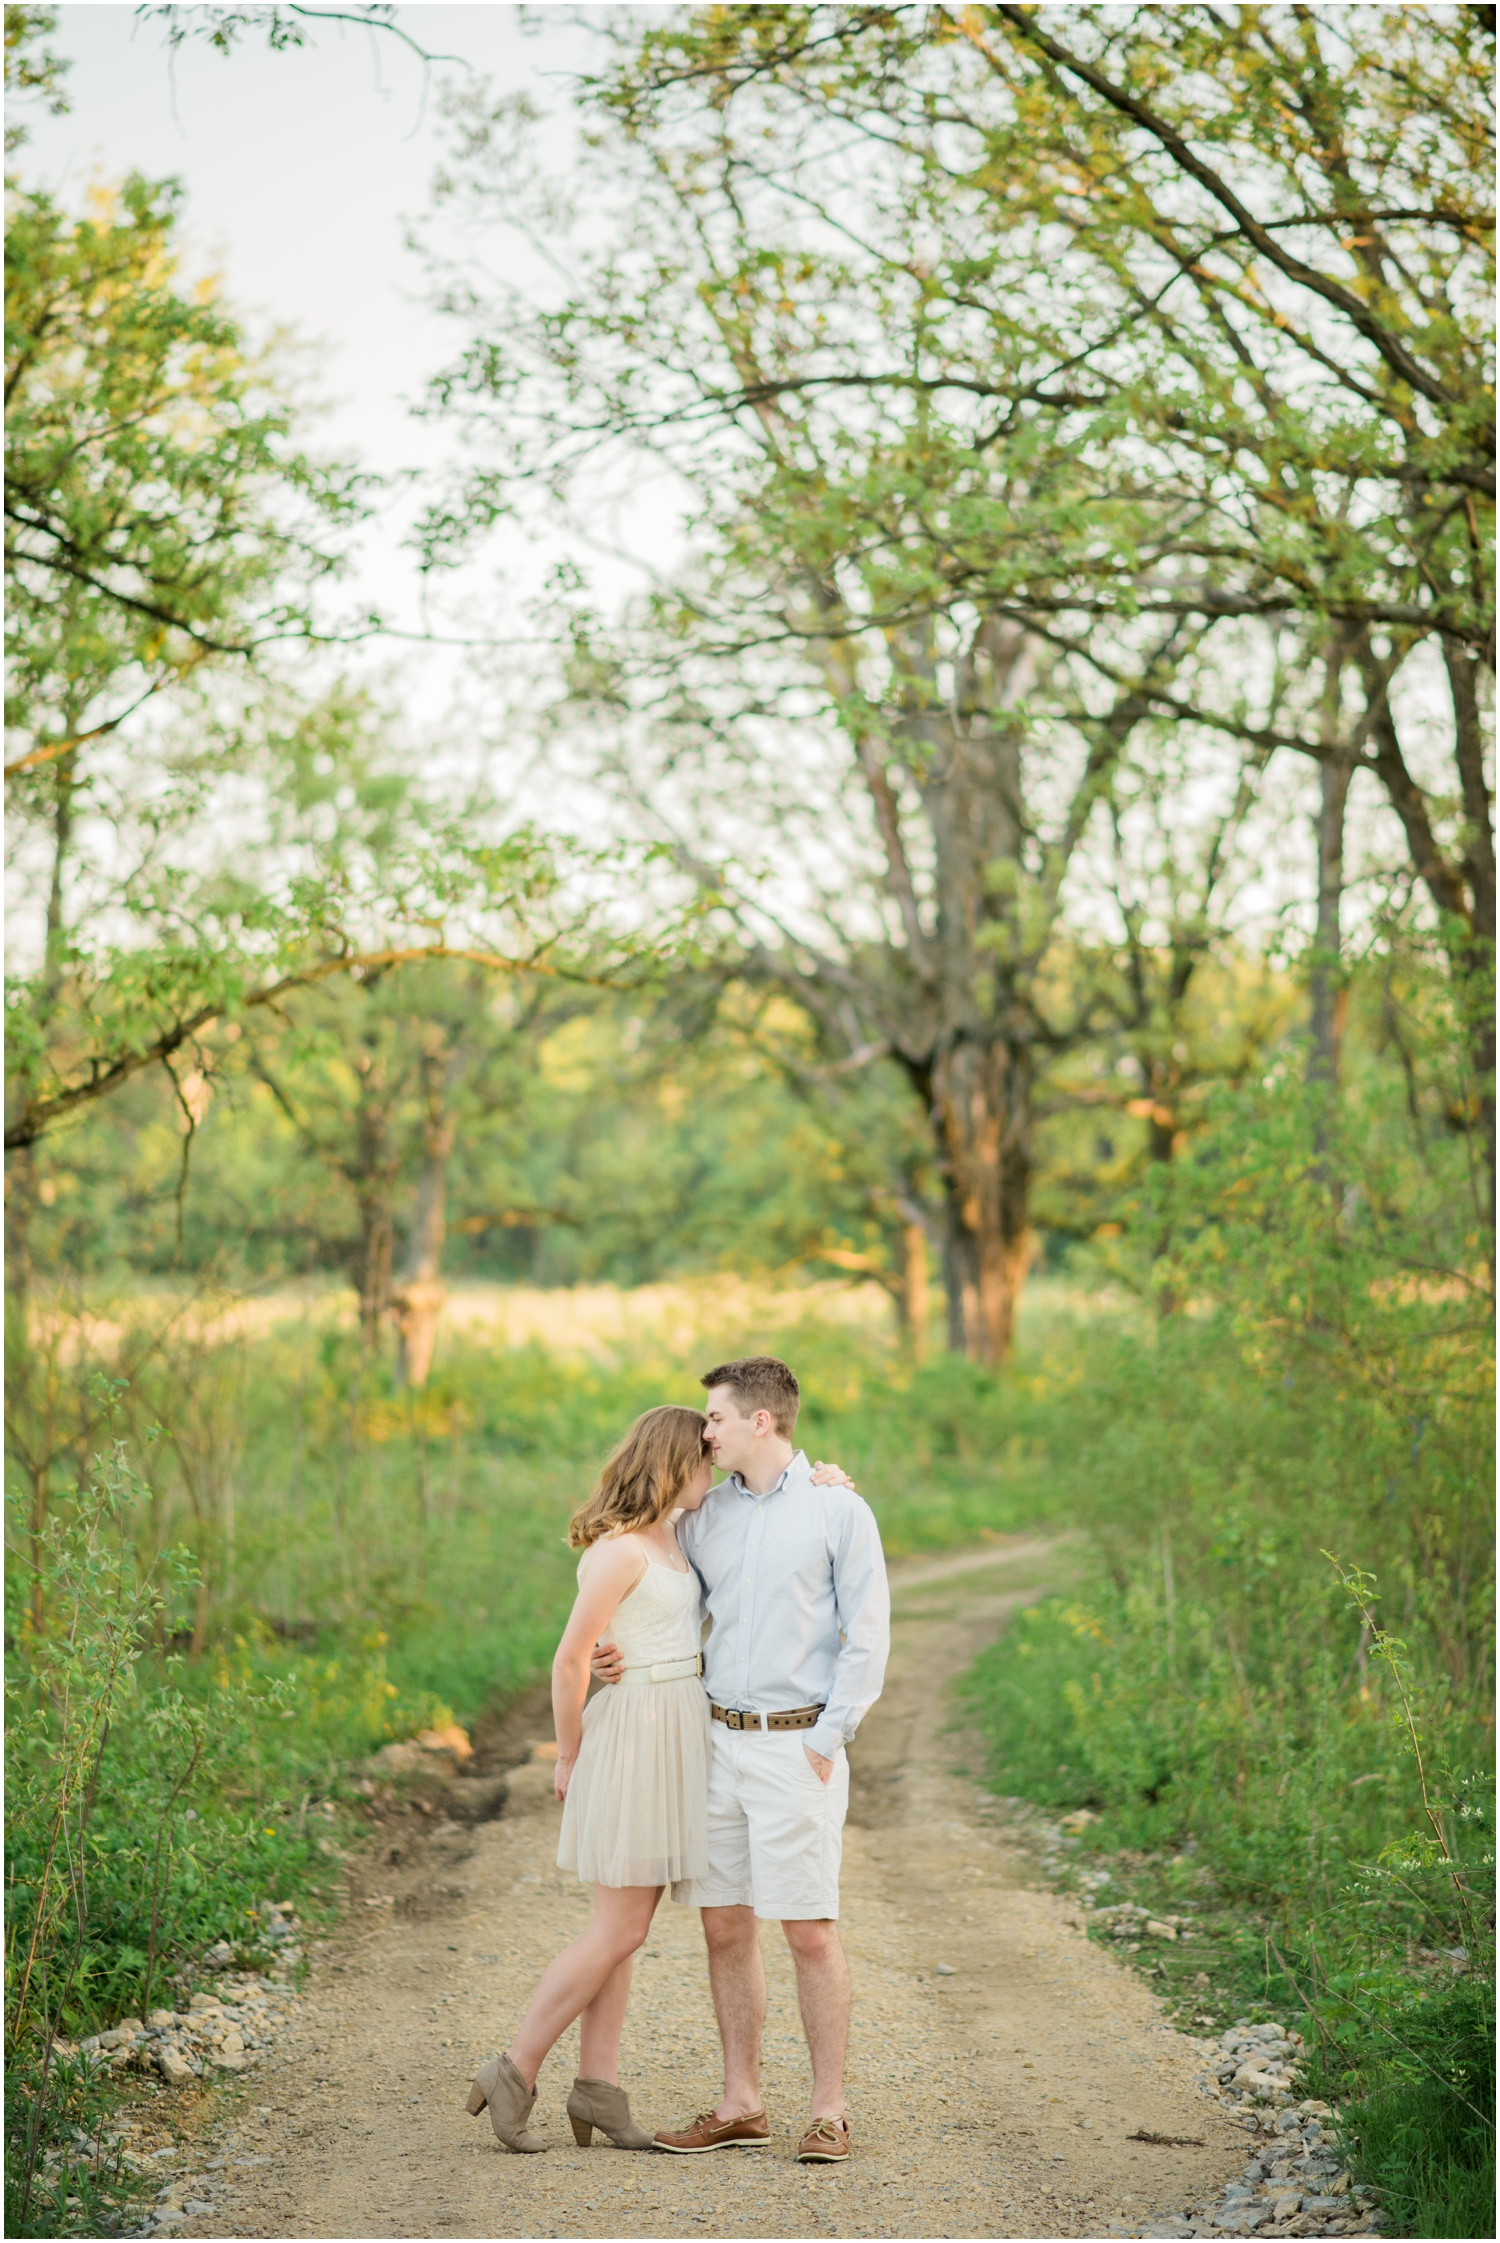 UW_Madison_Arboretum_Madison_WI_Engagement_Photos_Sydney_and_Tim_0029.jpg